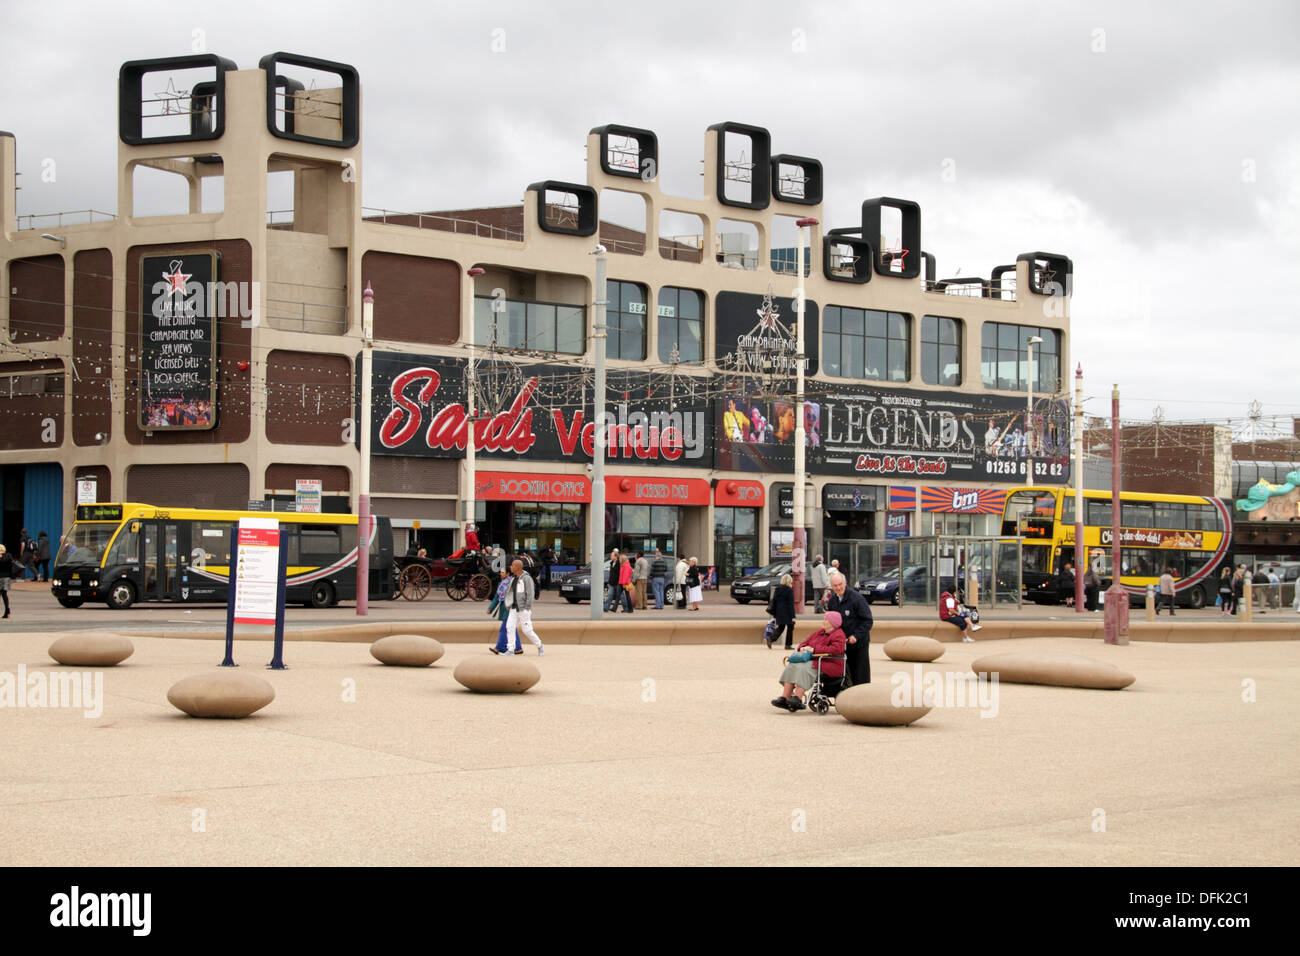 Entertainment venues on Blackpool front - Stock Image